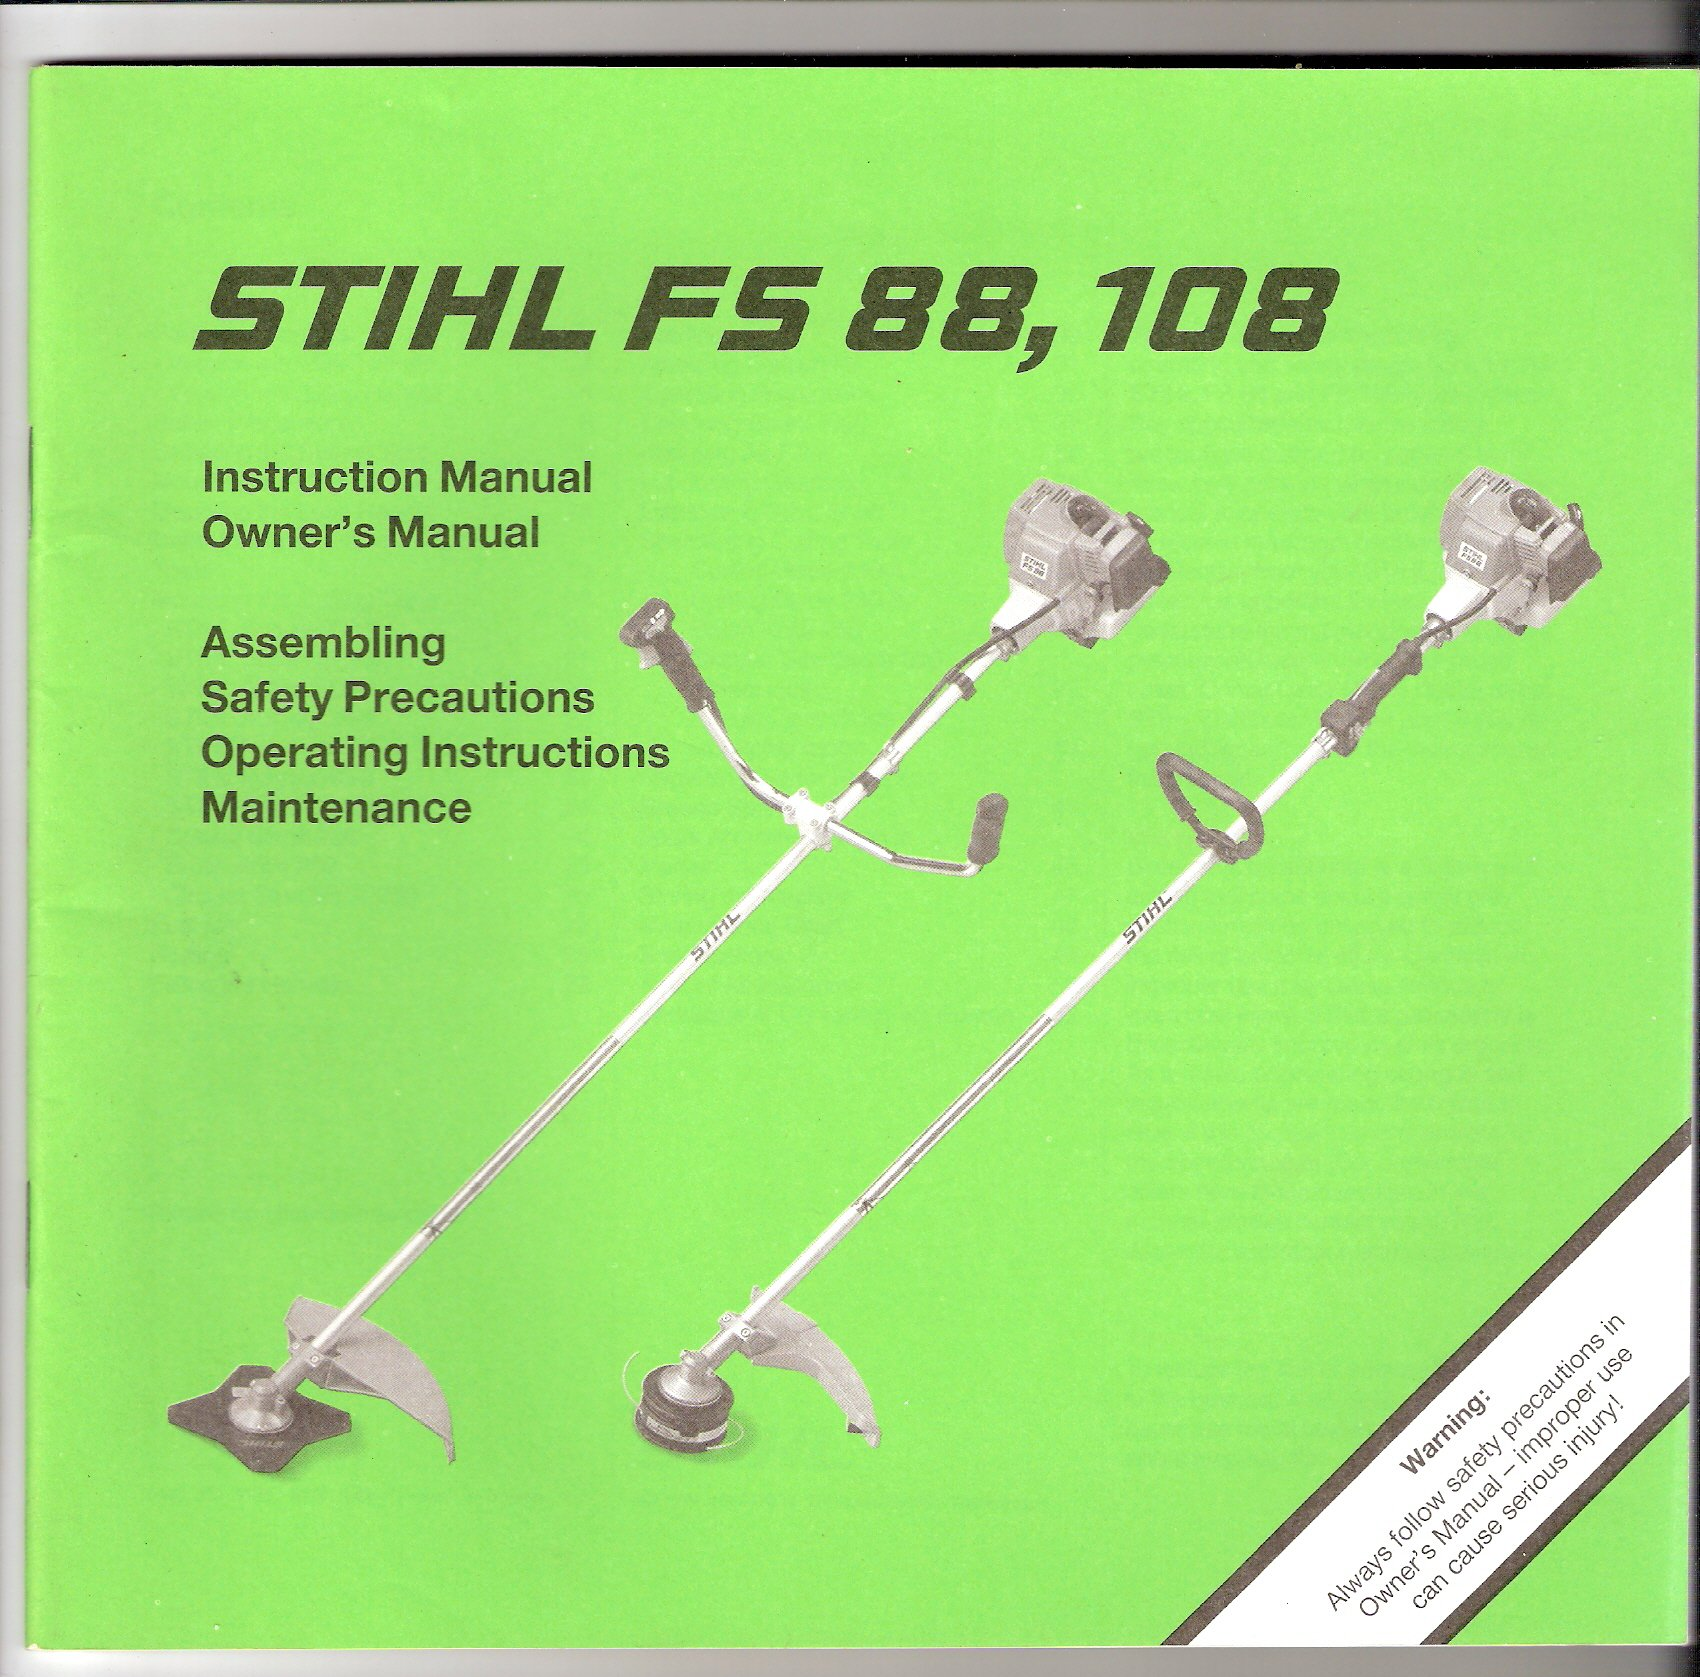 Stihl FS 88, 108 Instruction Manual Owner's Manual: Andreas Stihl:  Amazon.com: Books